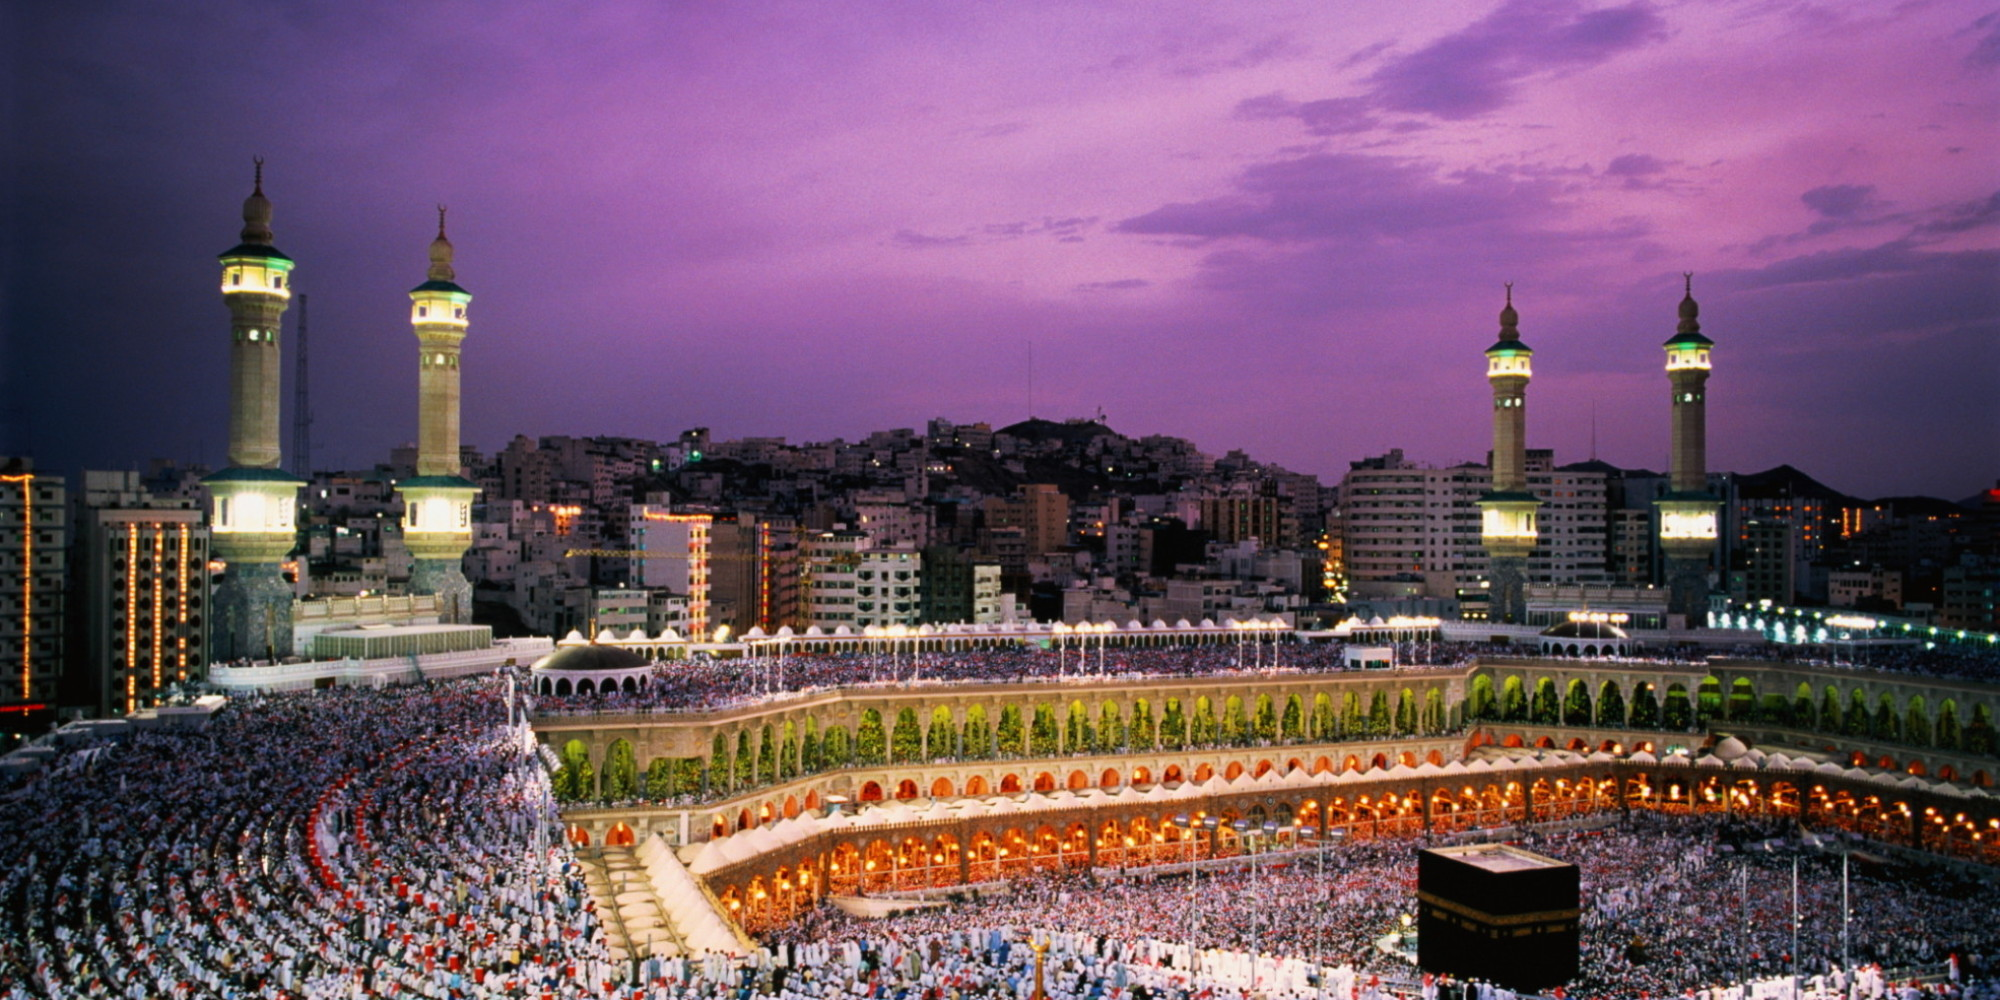 Fall Calendar Desktop Wallpaper Hajj 2014 Islam S Pilgrimage To Mecca Facts History And